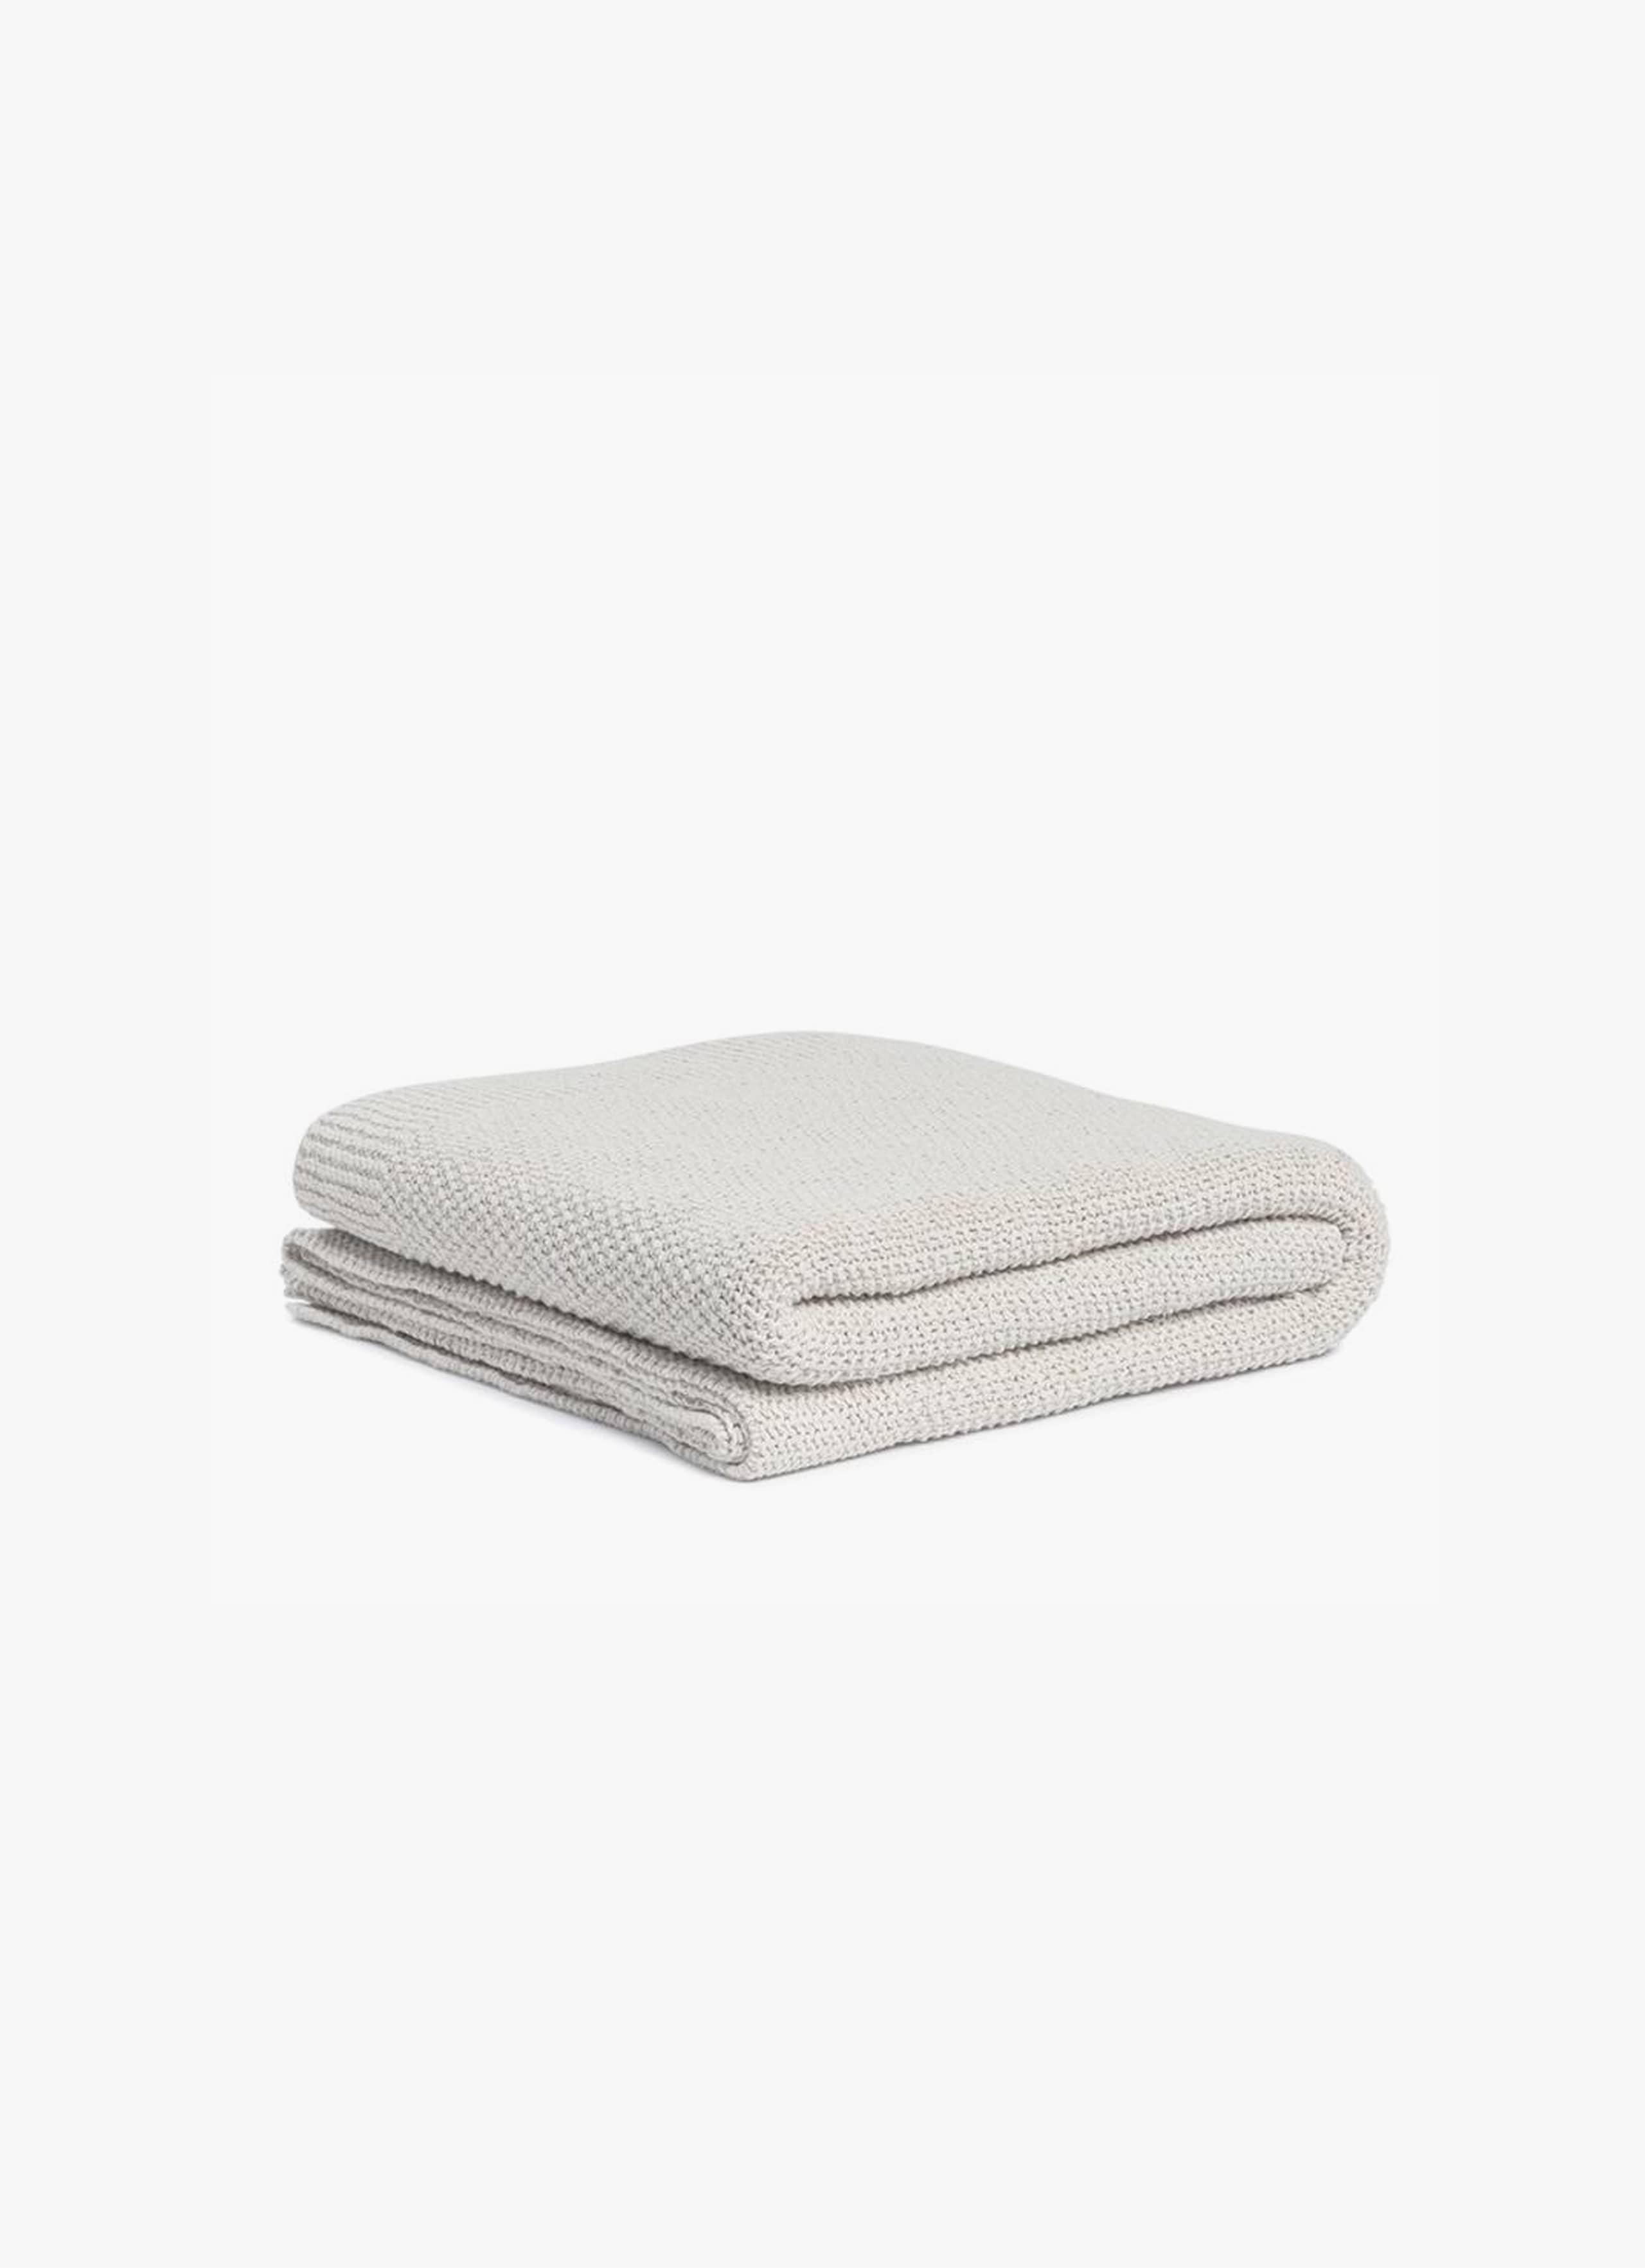 By Mölle - Denim throw – Off White - XL - 140 x 250cm